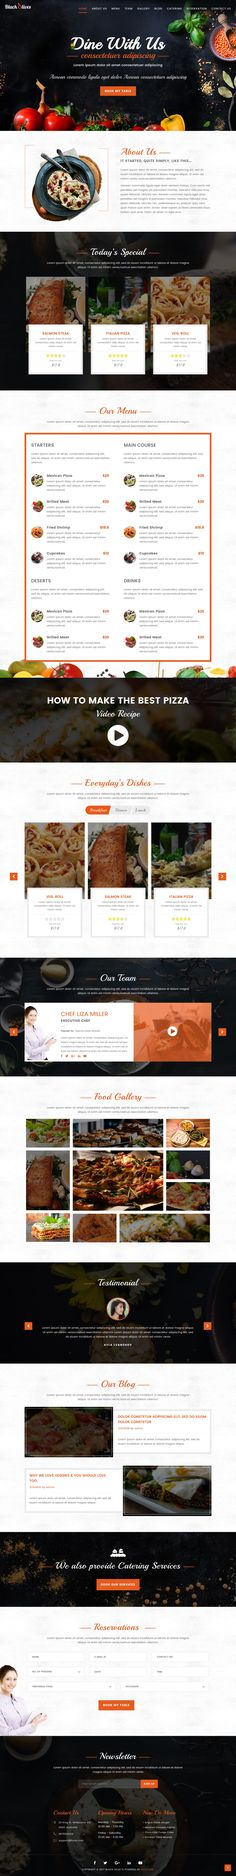 'Blackolive' is a long-scrolling One Page WordPress theme suited for a restaurant wanting an professional online presence. Features include sticky header navigation (that smooth scrolls down to the relevant sections), specials menu, restaurant-like food menu, team members, food/image gallery, testimonial/reviews slider, reservation form and a newsletter sign up box.